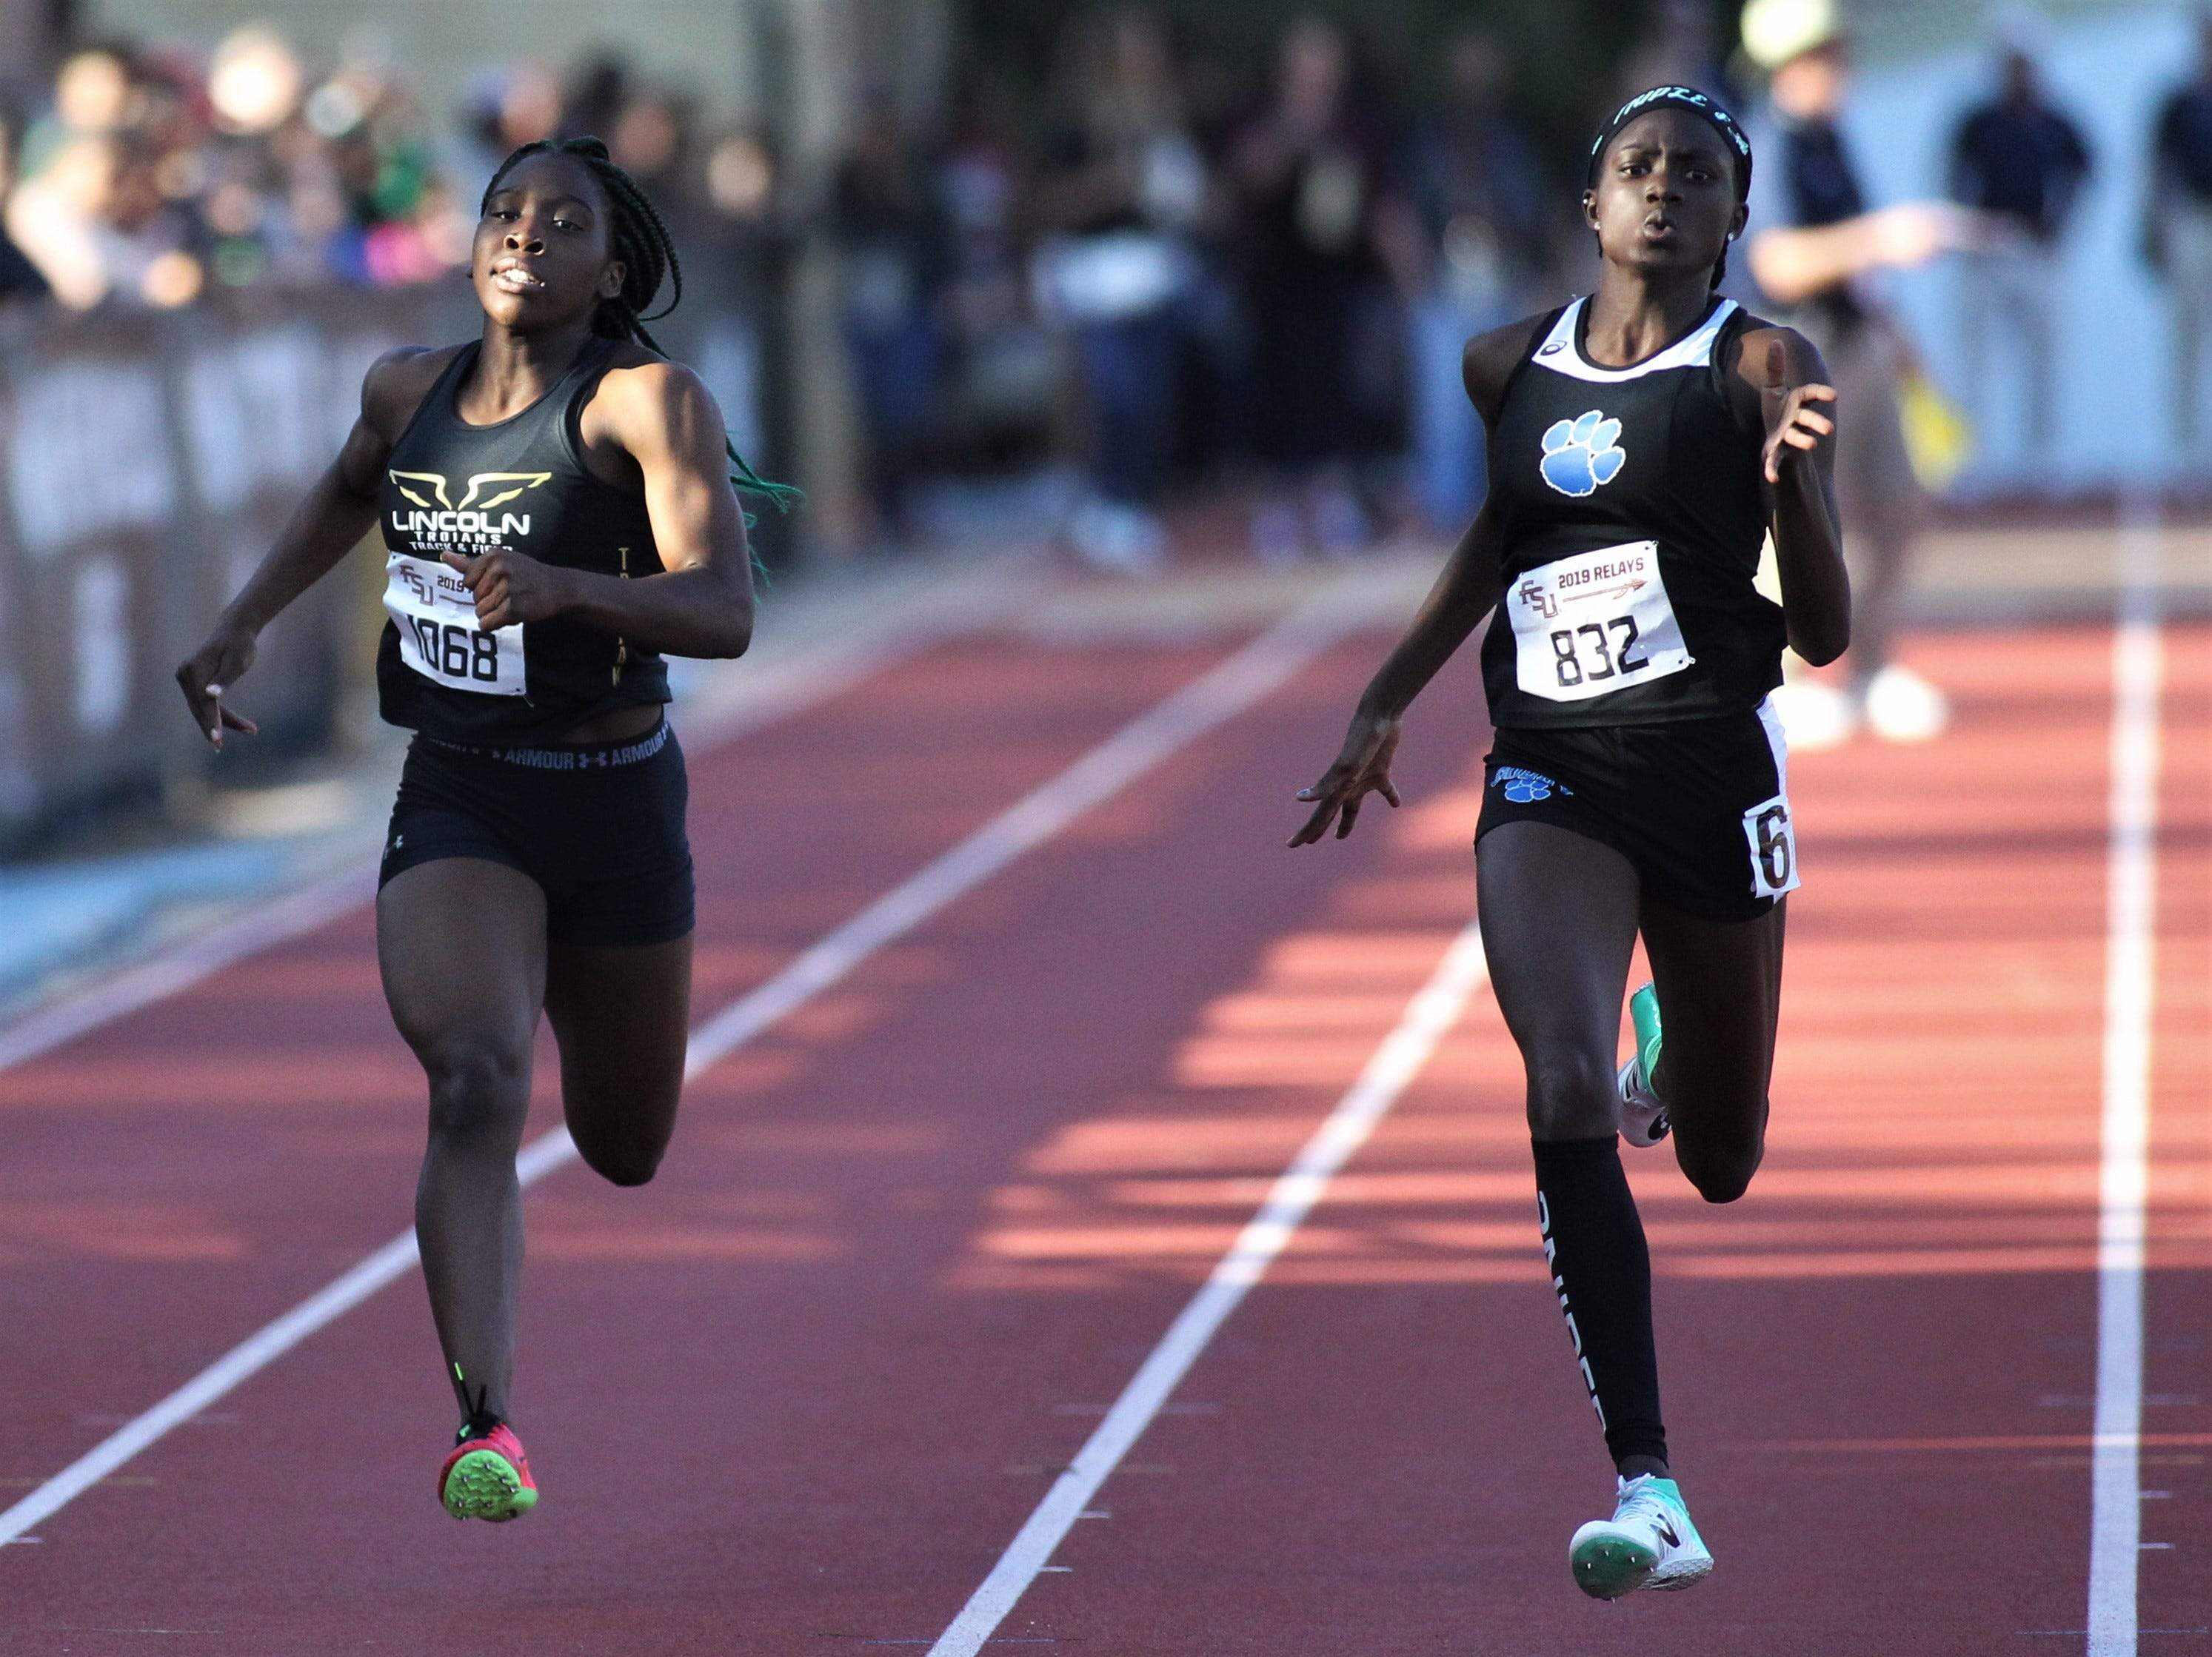 Lincoln sophomore Miahna Harden and Godby sophomore Naveyh Frost run the 200-meter dash during the 40th annual FSU Relays at Mike Long Track on Friday, March 22, 2019.